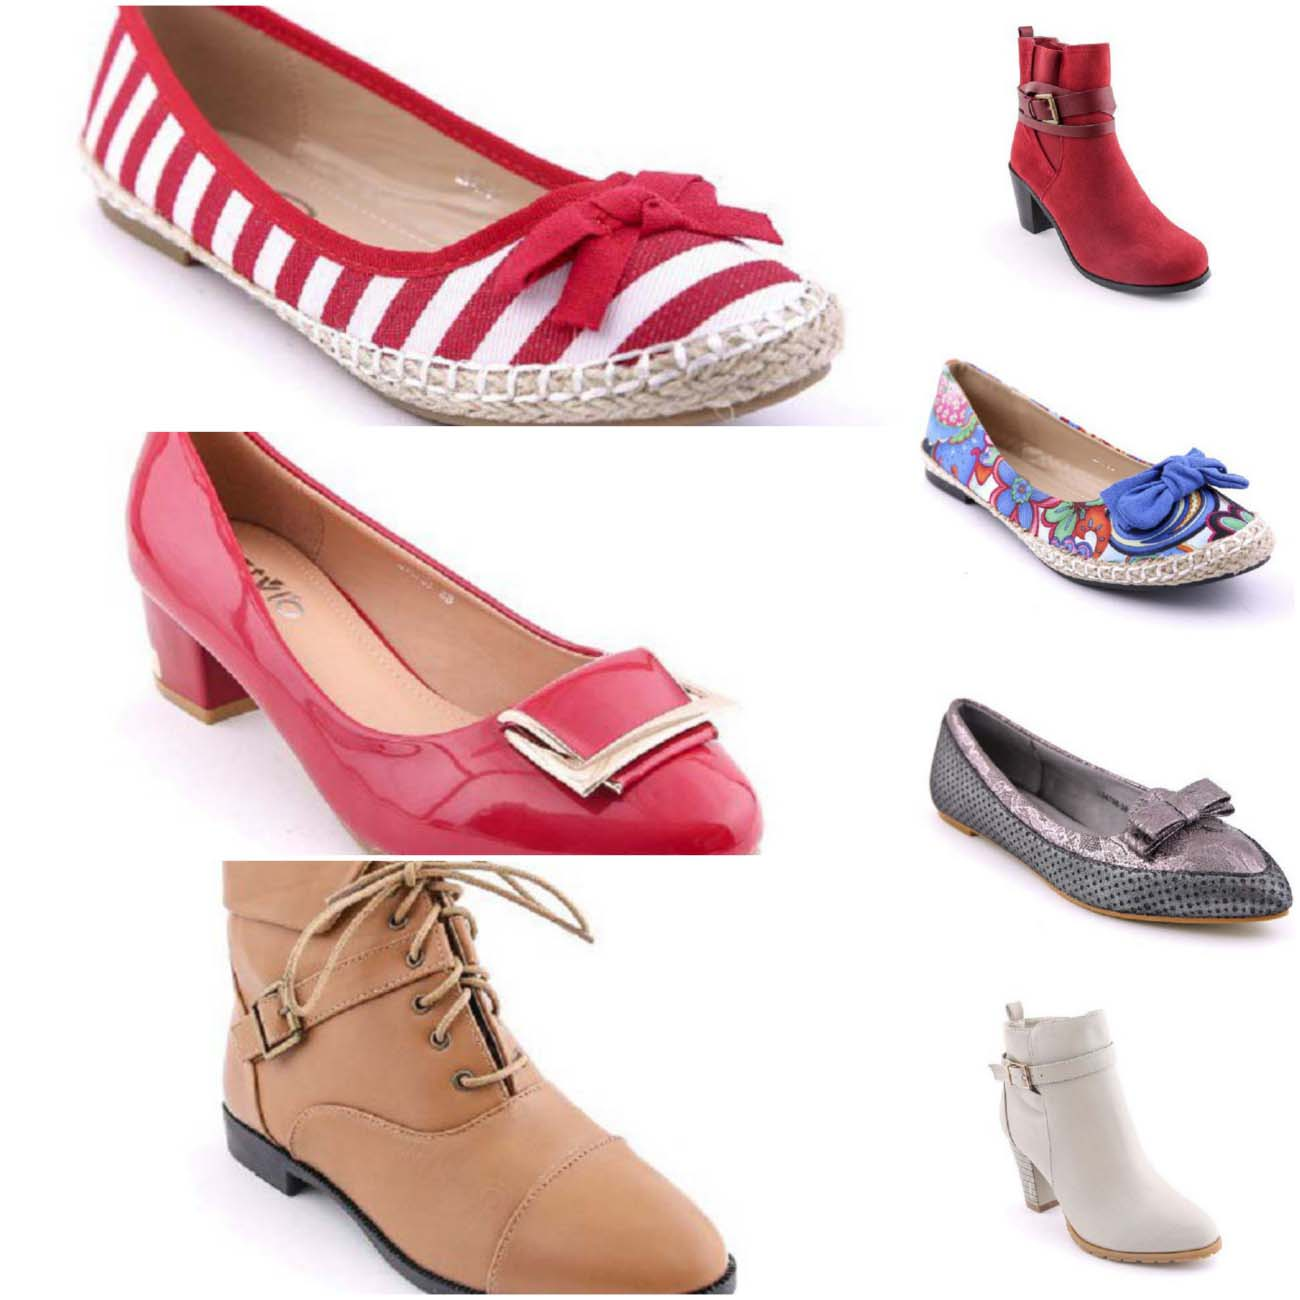 Military Shoes For Sale In Pakistan